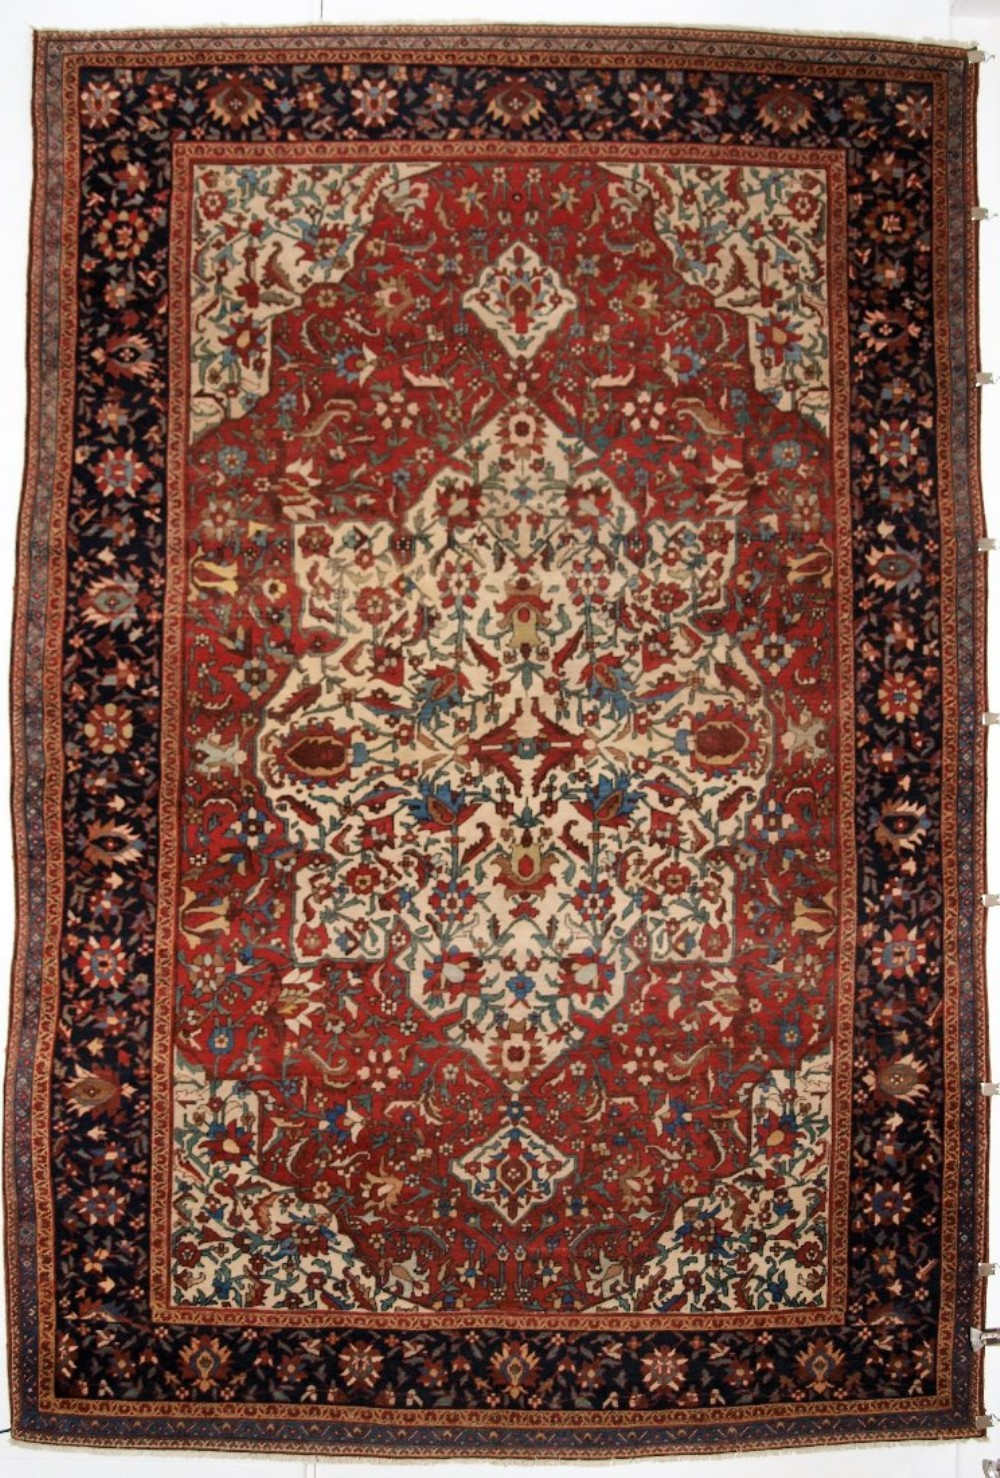 antique faraghan sarouk carpet outstanding example fine weave great colour 19th century